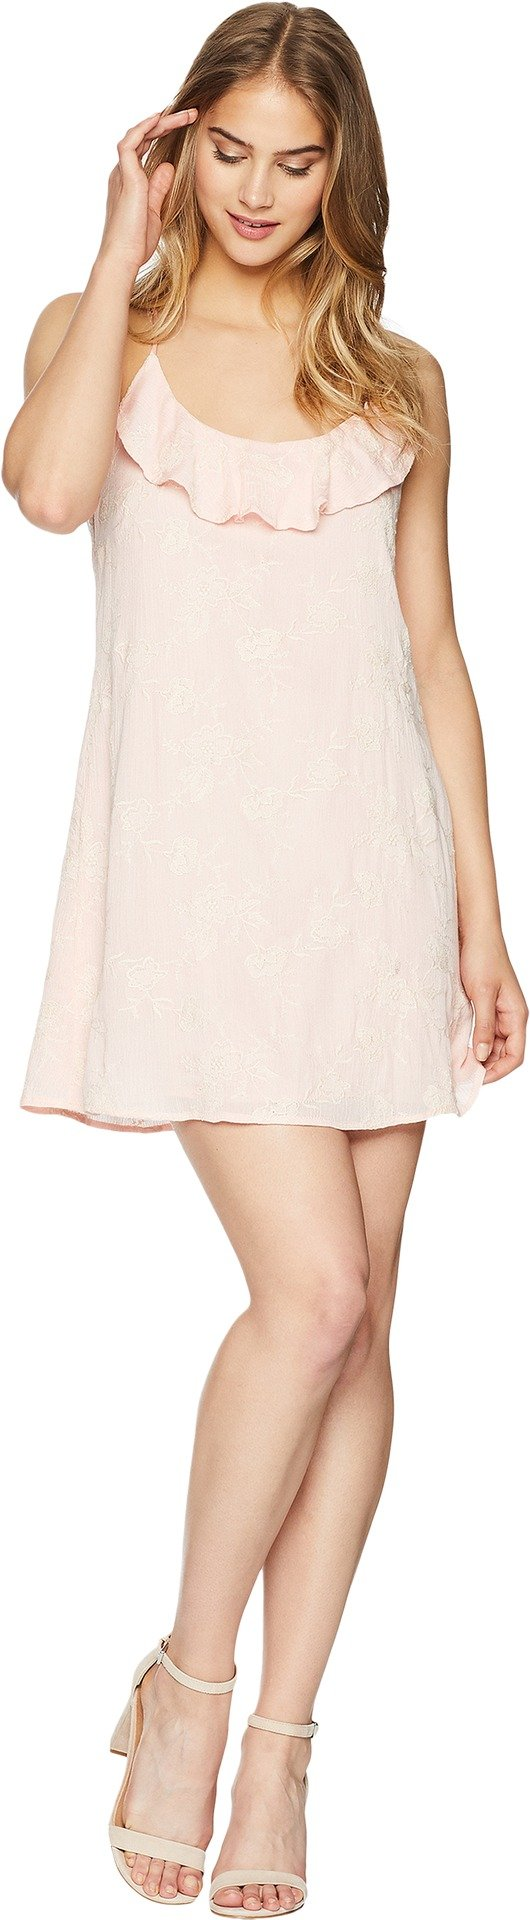 Lucy Love Women's Bat Your Lashes Dress Petal X-Small